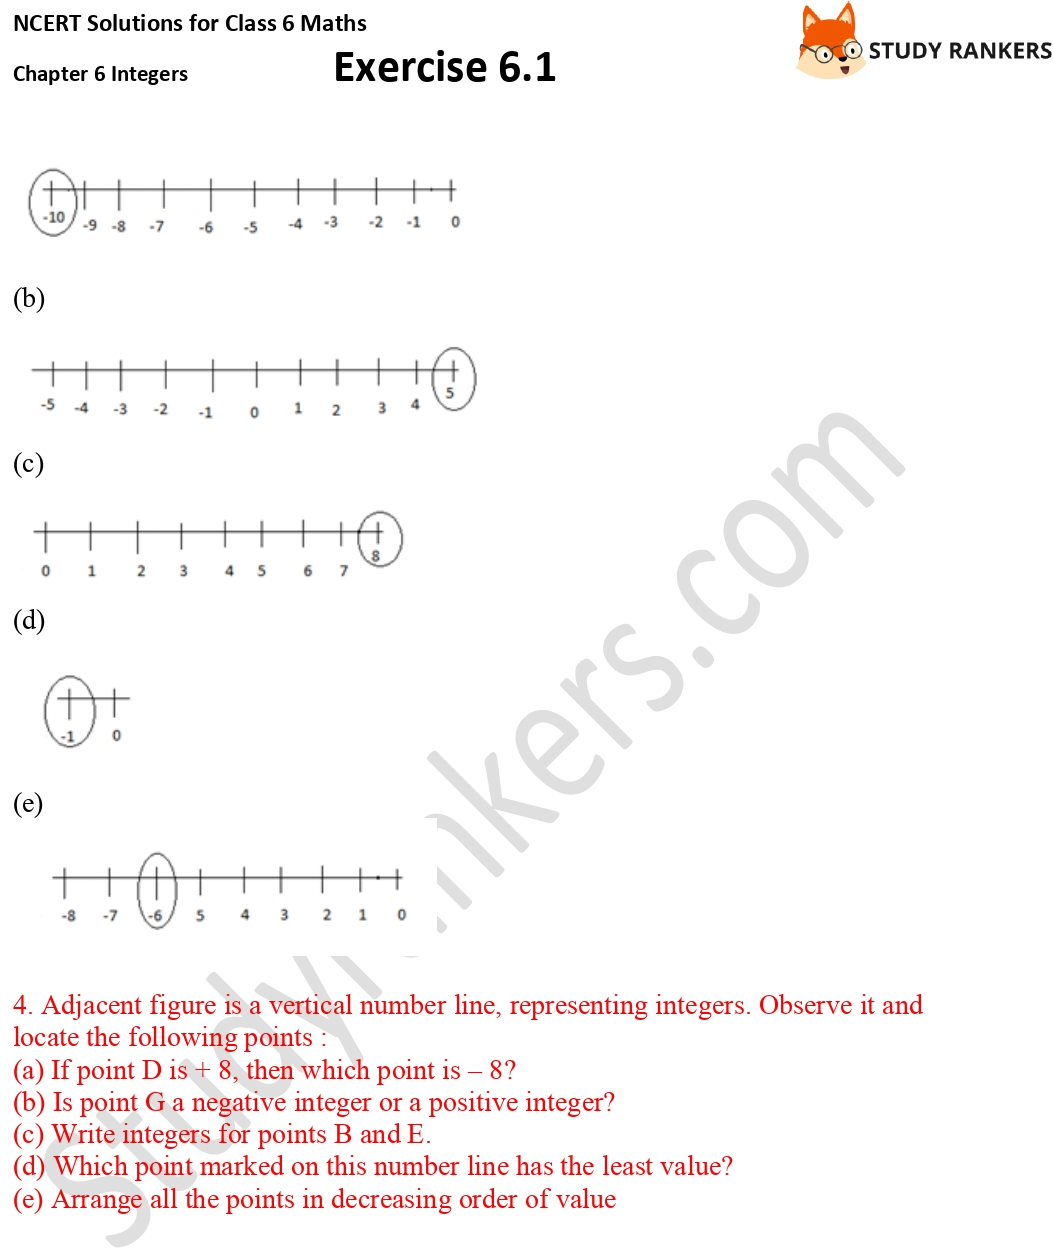 NCERT Solutions for Class 6 Maths Chapter 6 Integers Exercise 6.1 Part 2